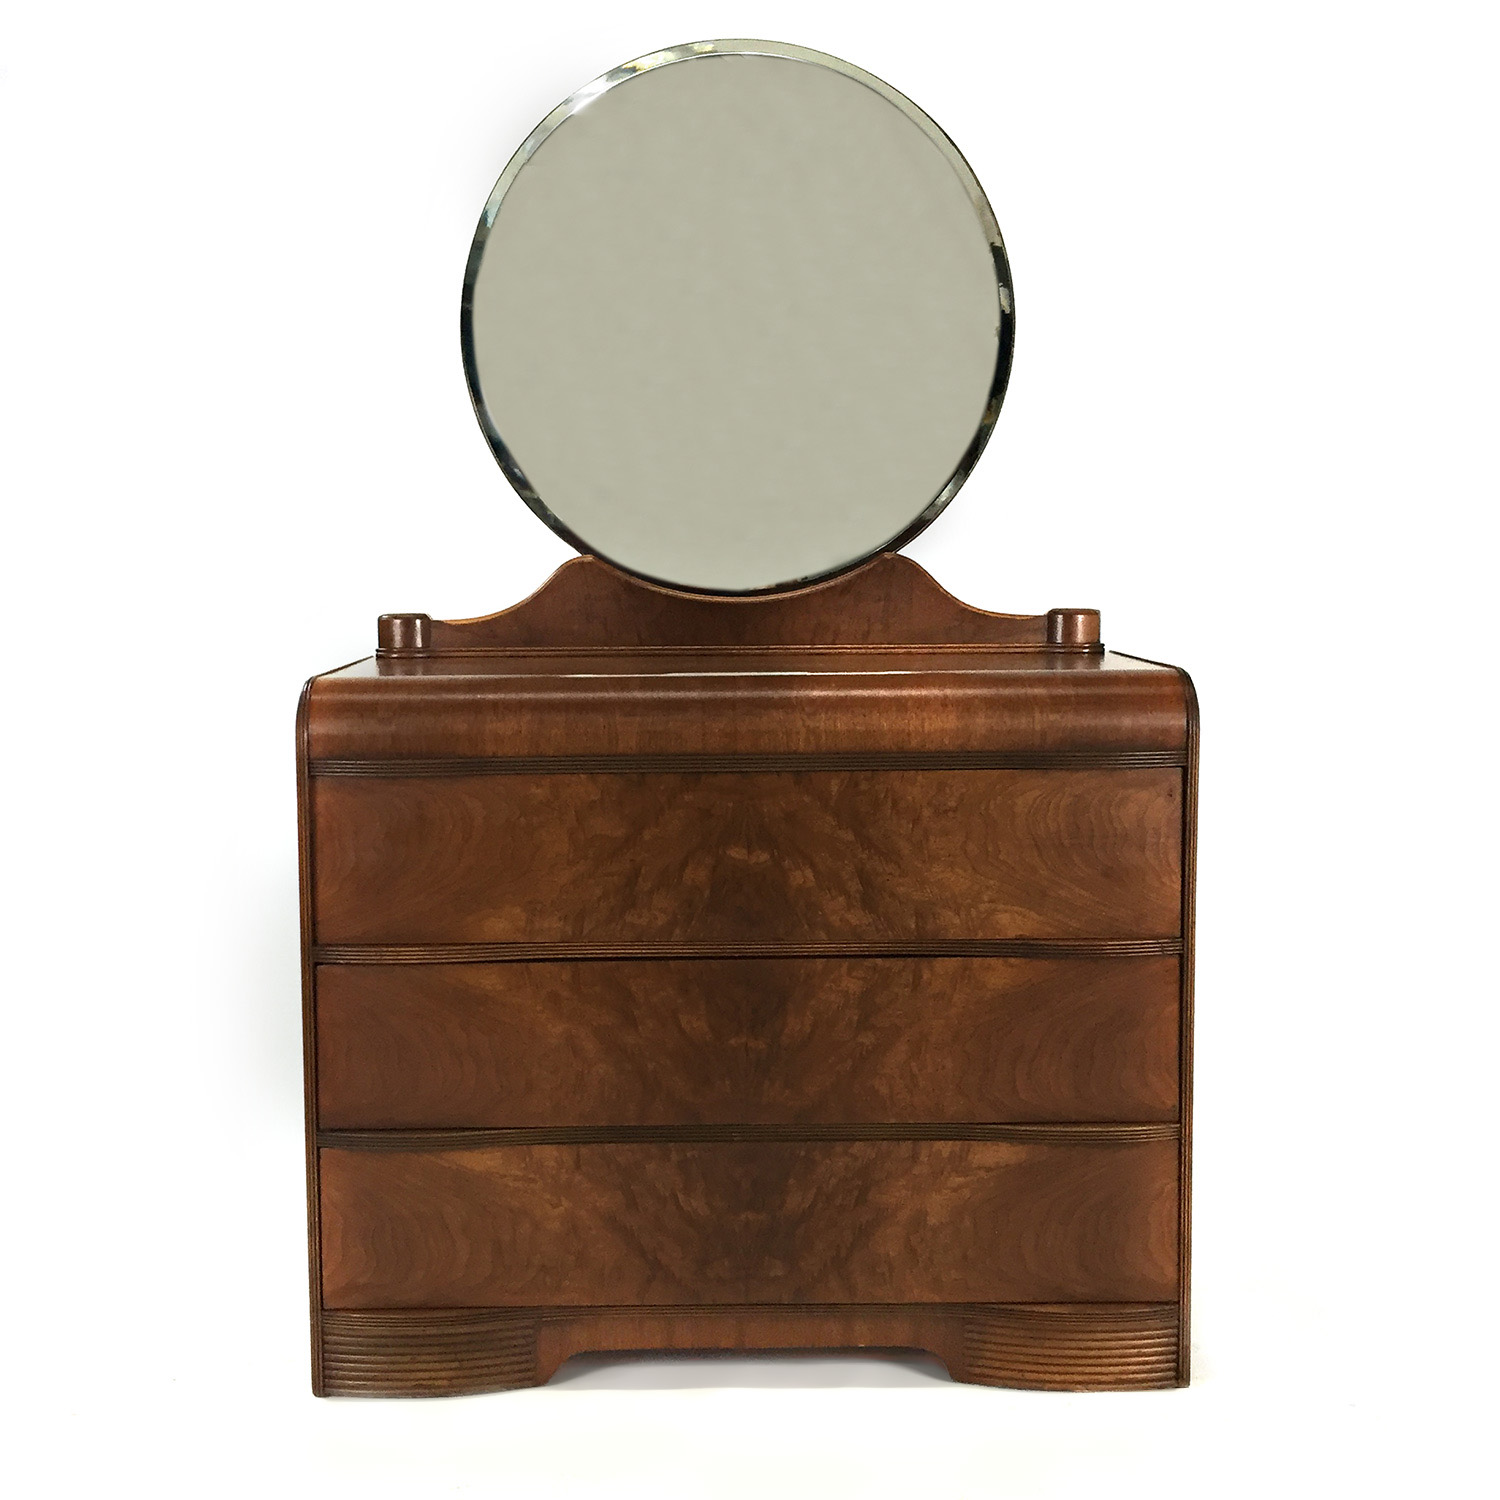 Custom Art Deco Waterfall Dresser with Mirror dimensions